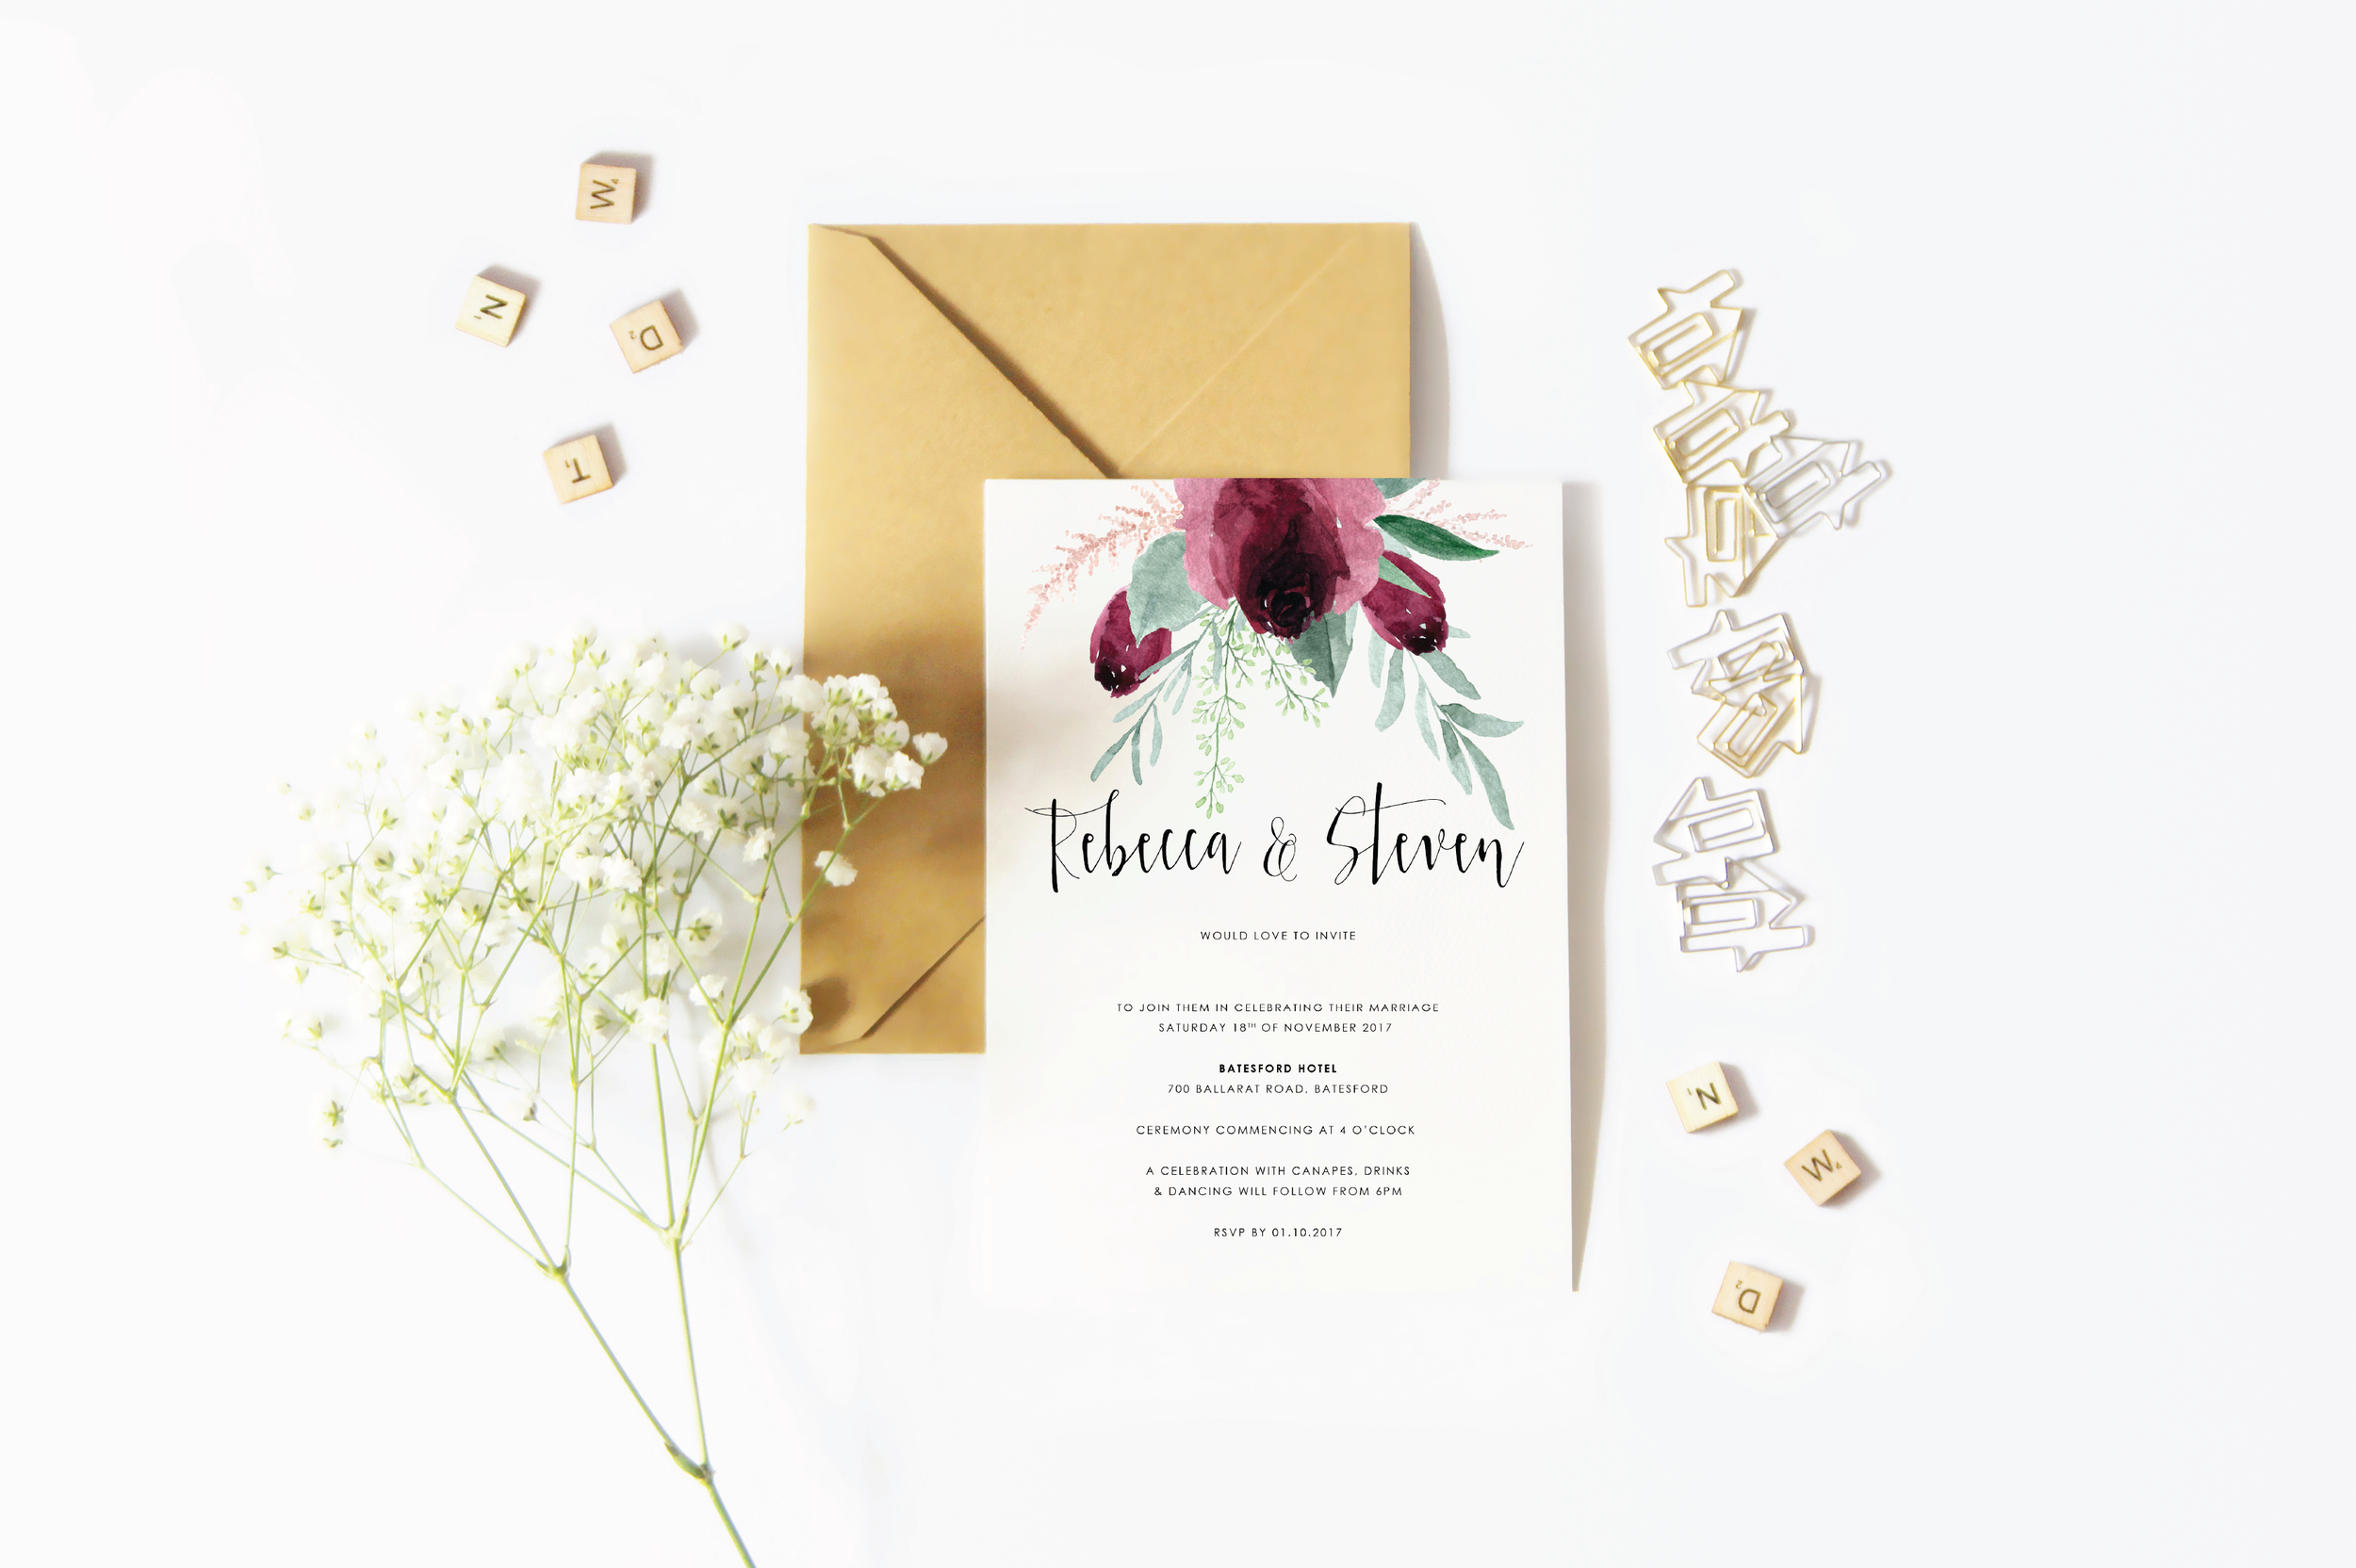 Flat lay with invites on there-07.jpg